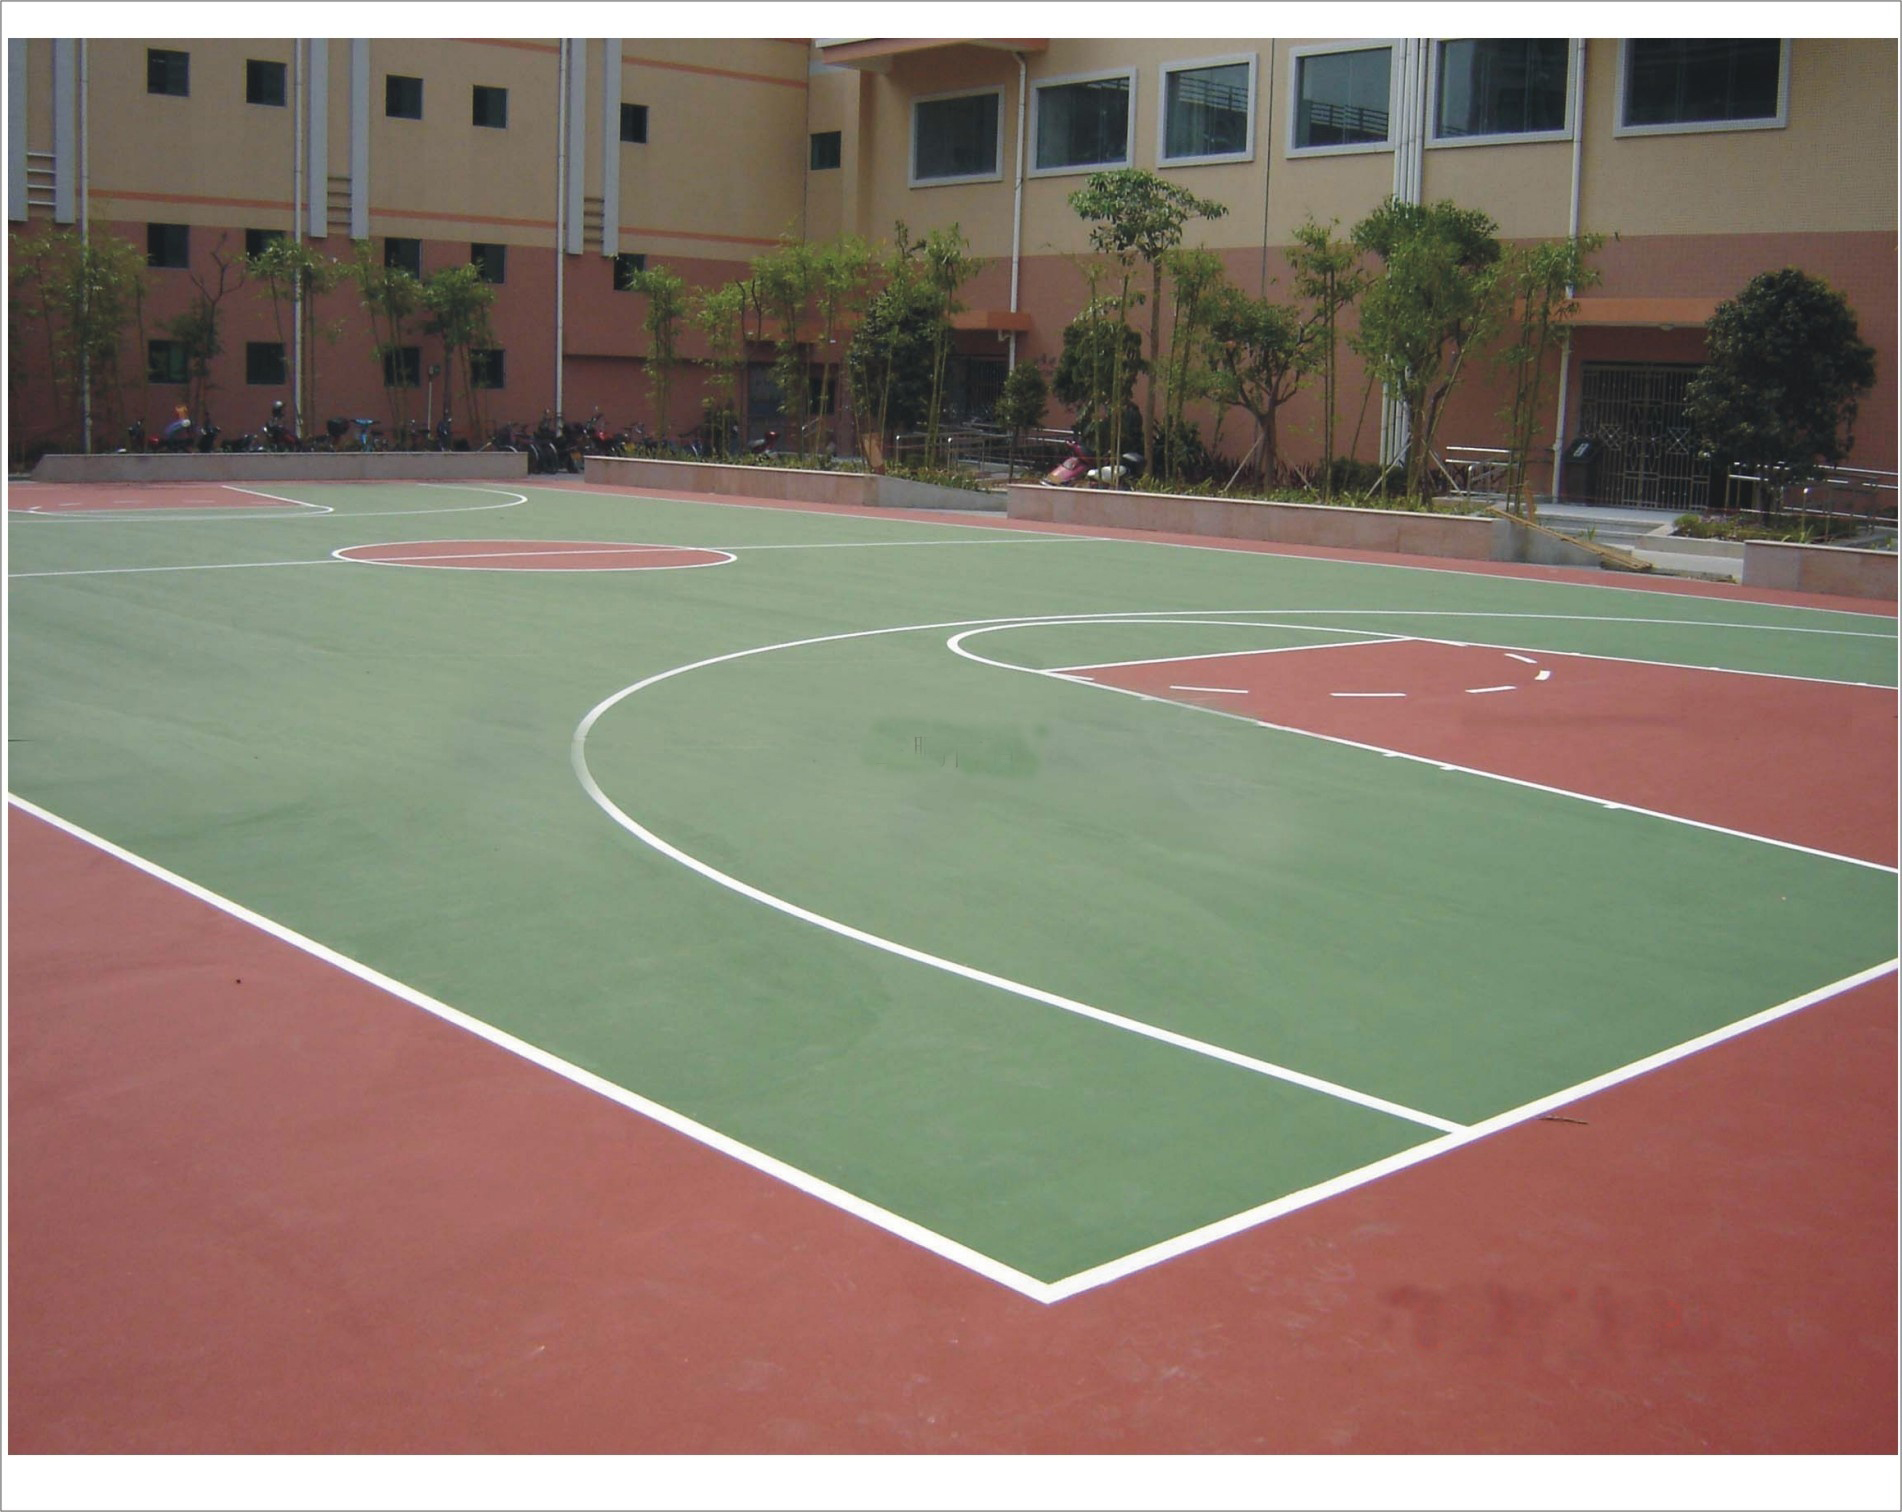 RoHS approved Silicon Polyurethane binder for basketball sport court ground